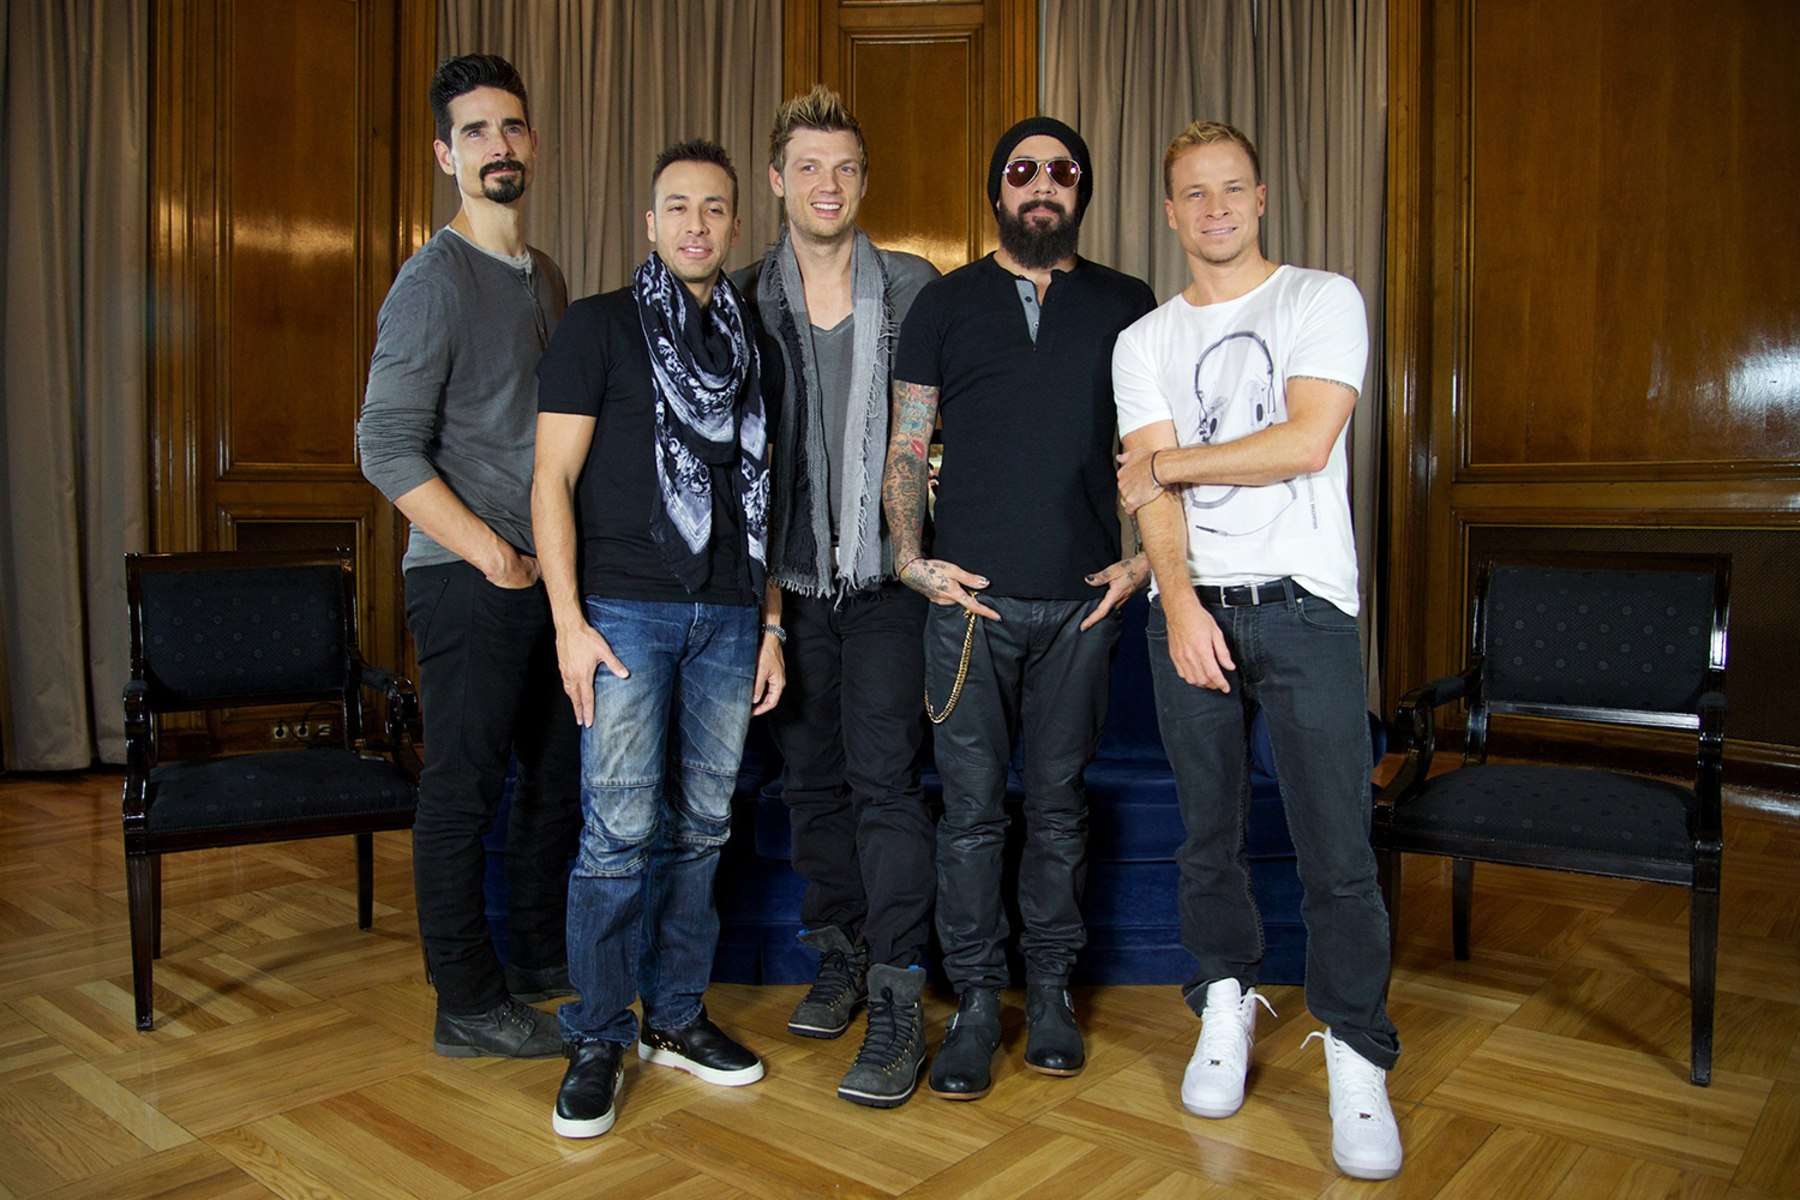 Image: Backstreet Boys Madrid Photocall